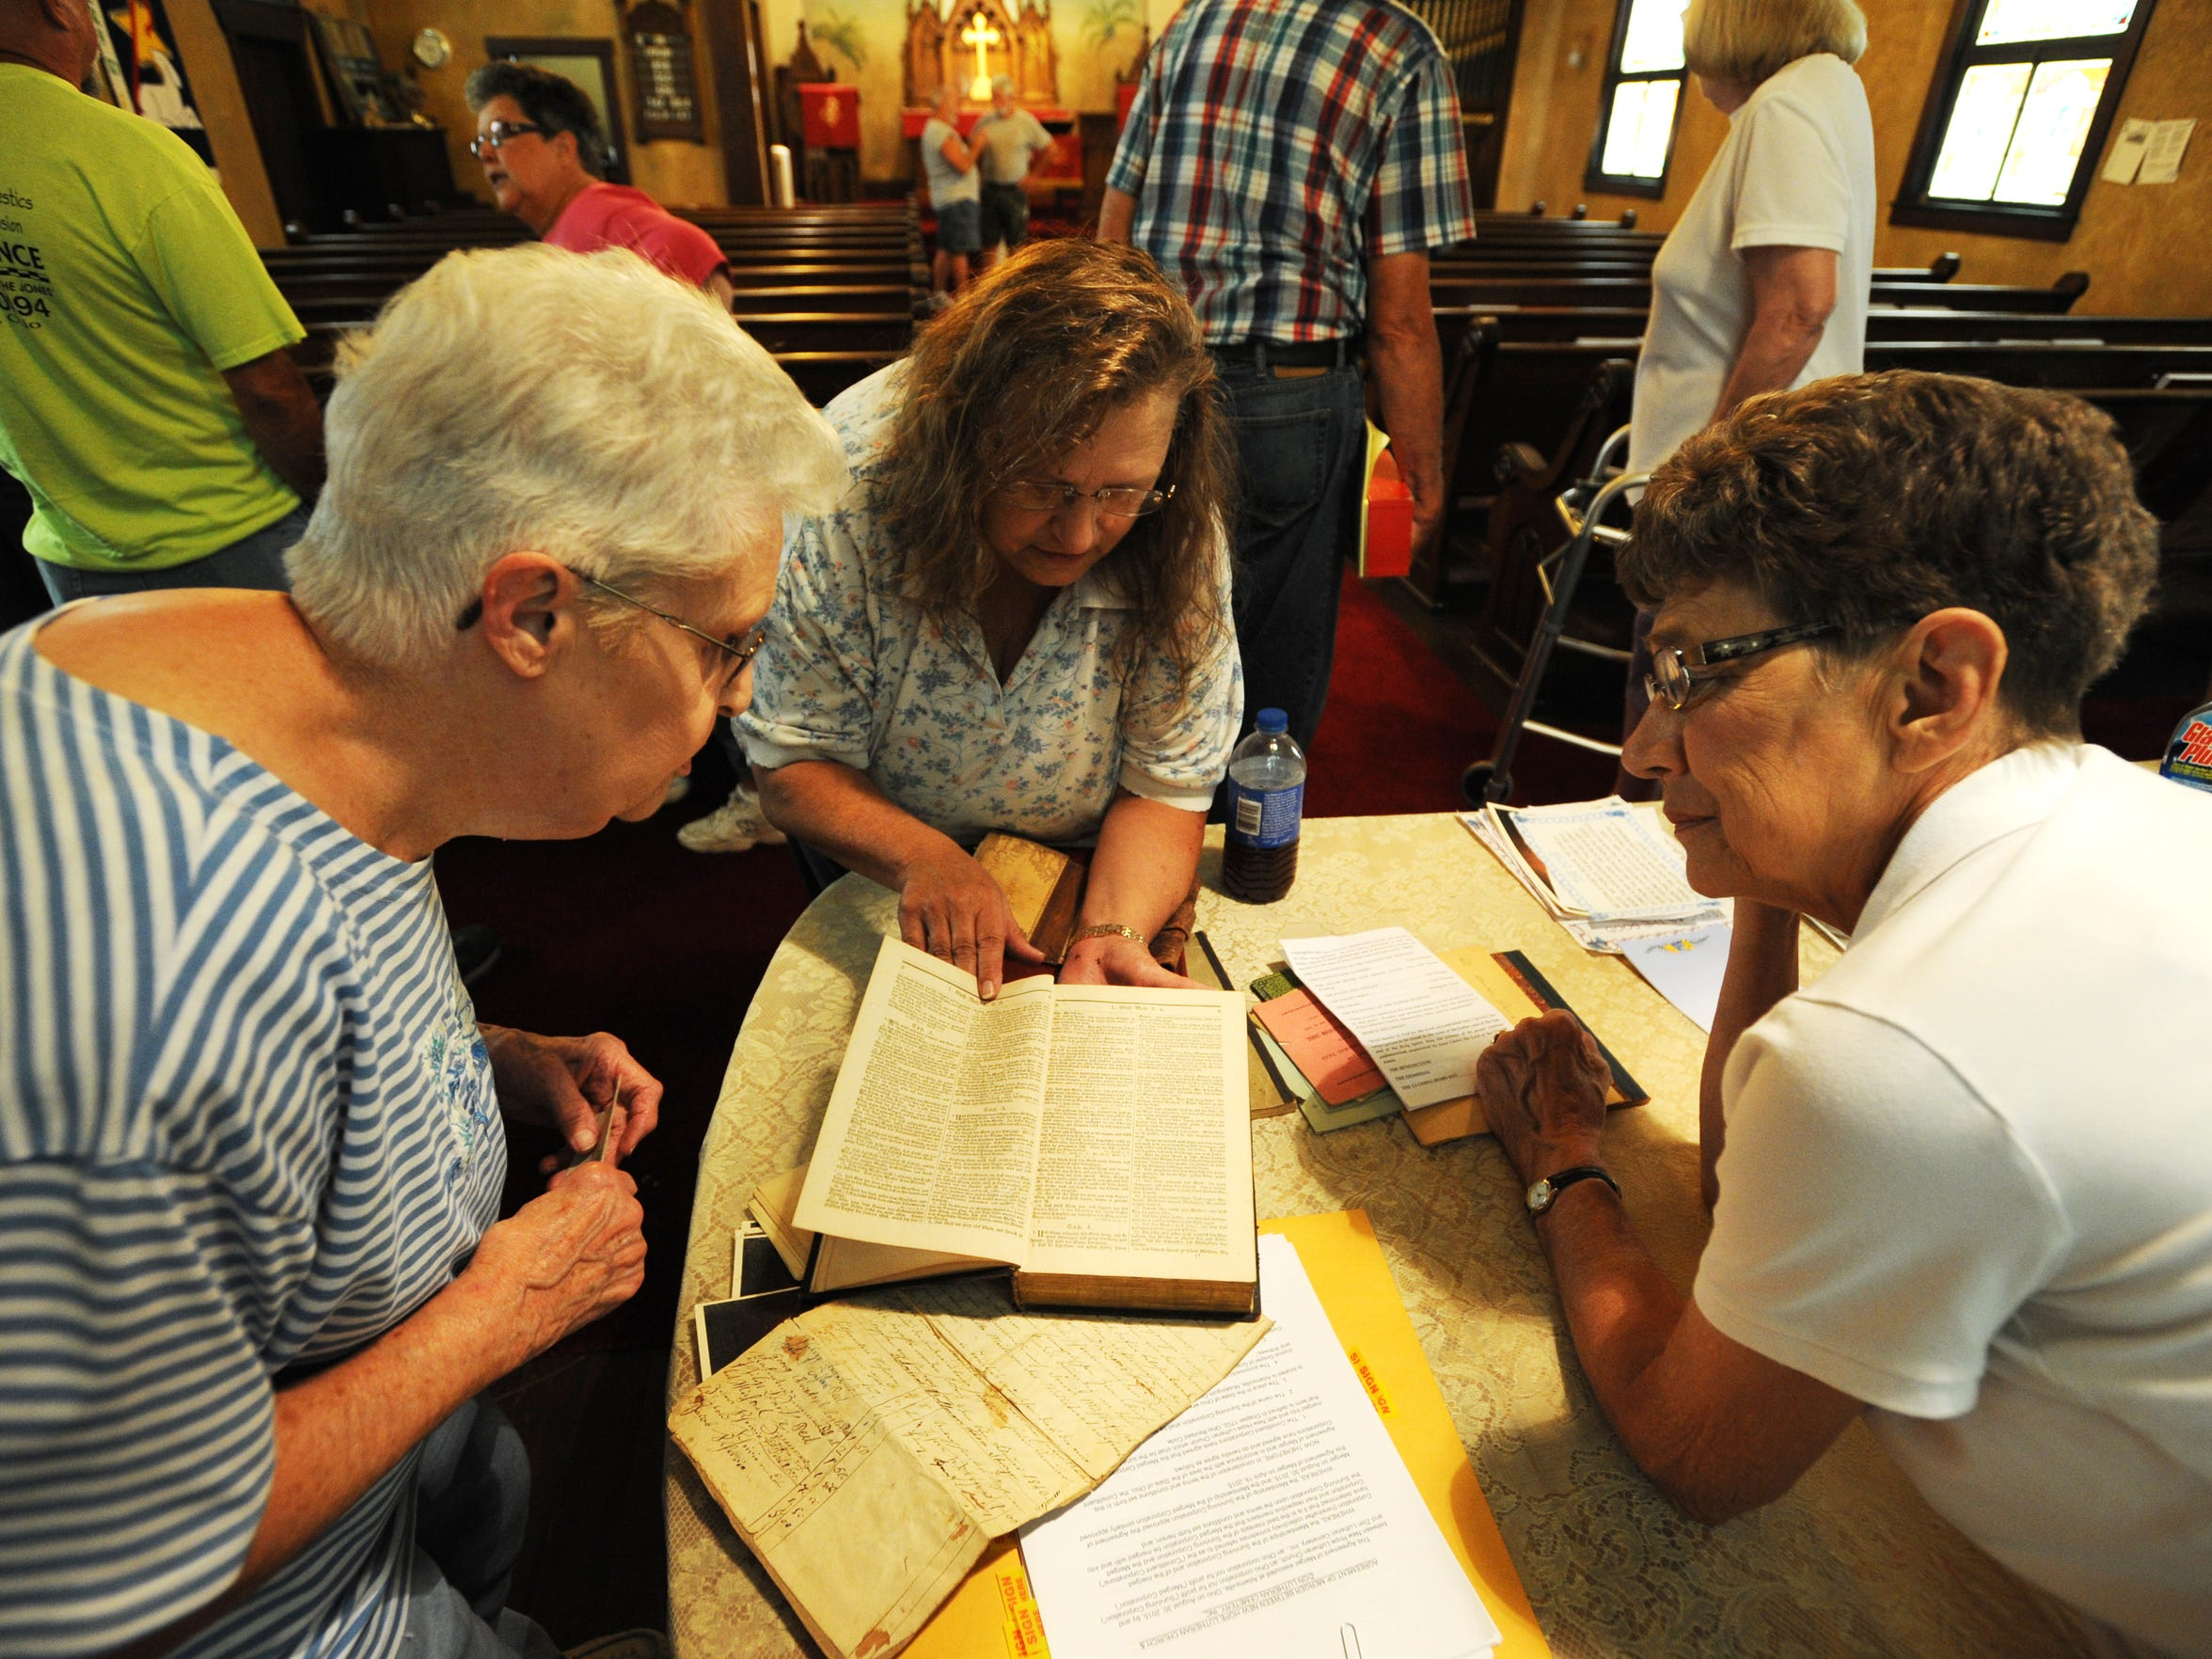 Willajene Vensel, left, Kaye Morgan and Pastor Mary Molnar look at a German bible found while cleaning out Zion Lutheran Church. Vensel is the longest-serving member of the congregation.